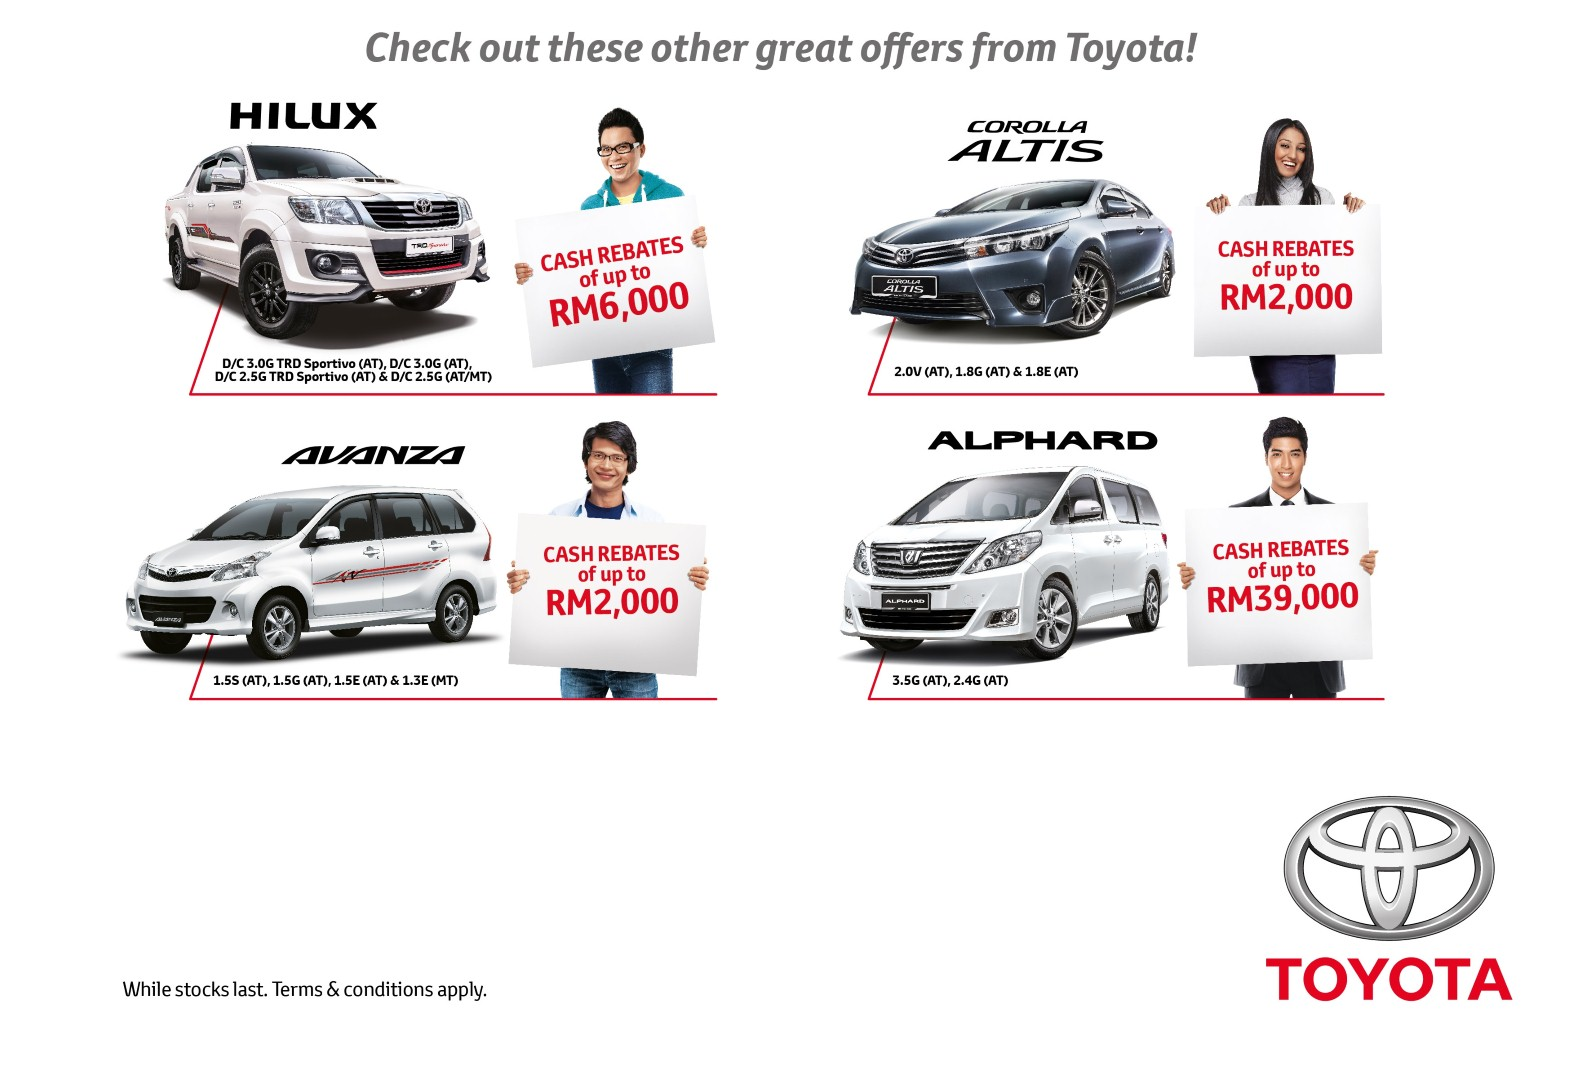 sales promotion toyota As the world's largest distributor of forklifts, toyota forklifts manufactures internal combustion forklifts, electric forklifts toyota value latest promotions.